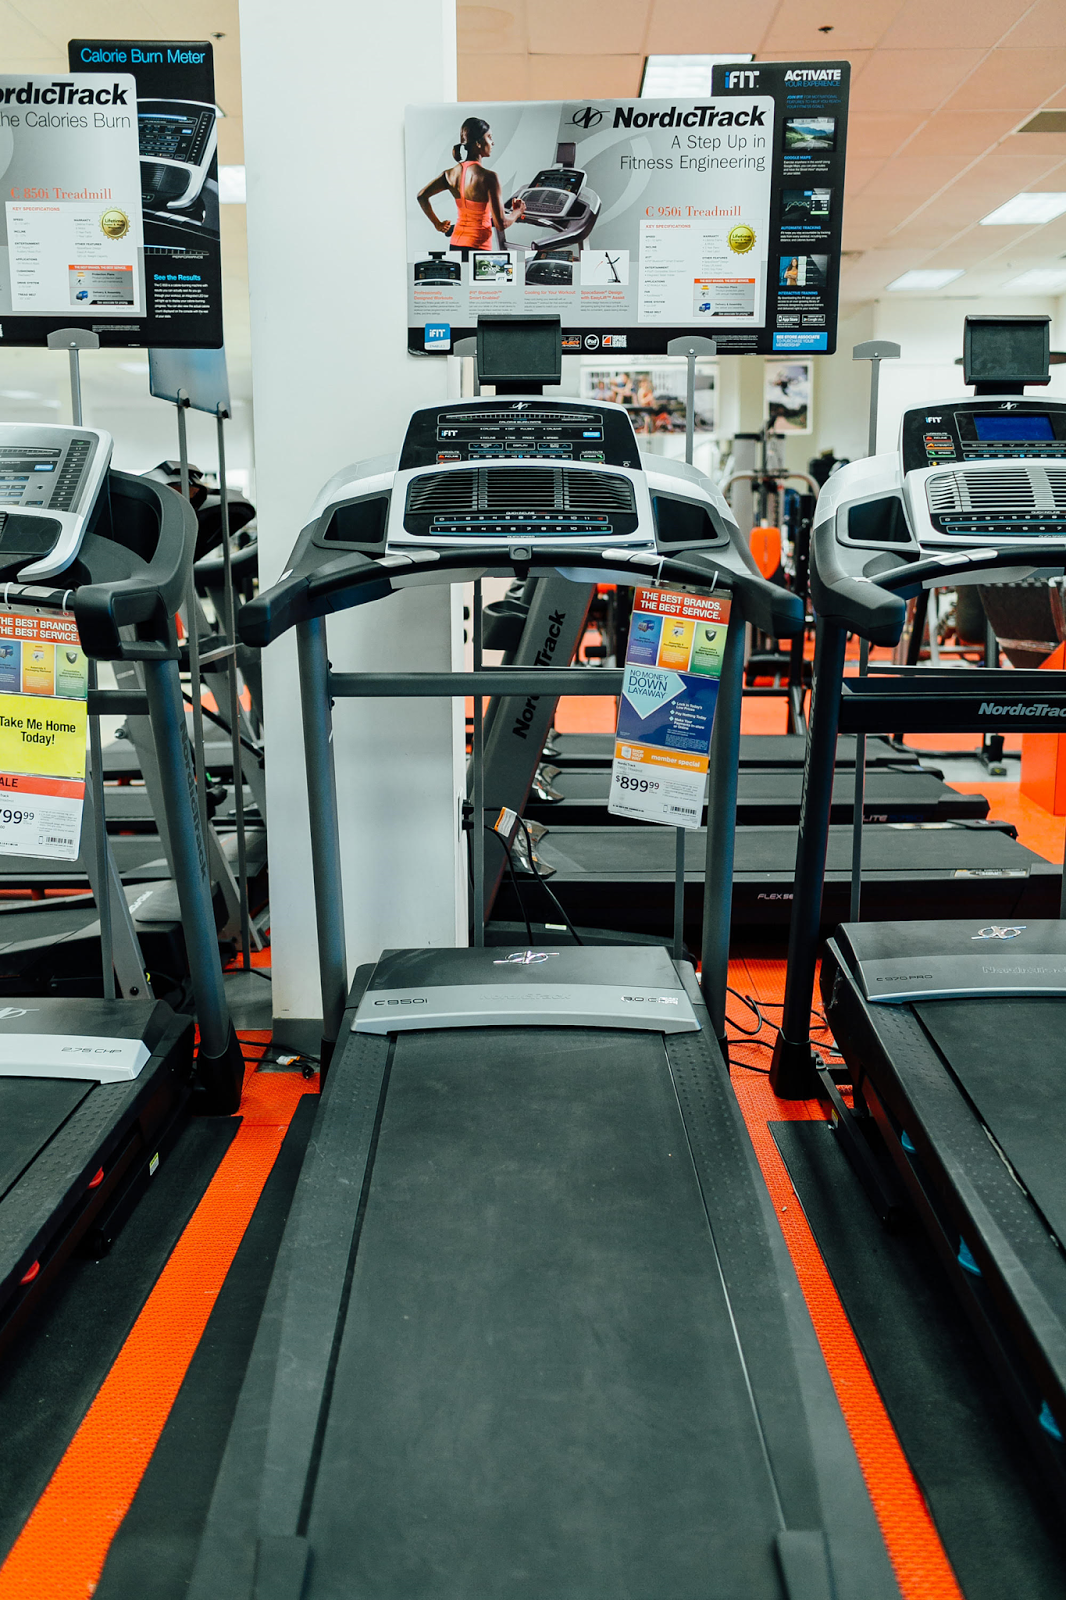 How to Shop for Fitness Equipment for Your Home +by Walking in Memphis in High Heels